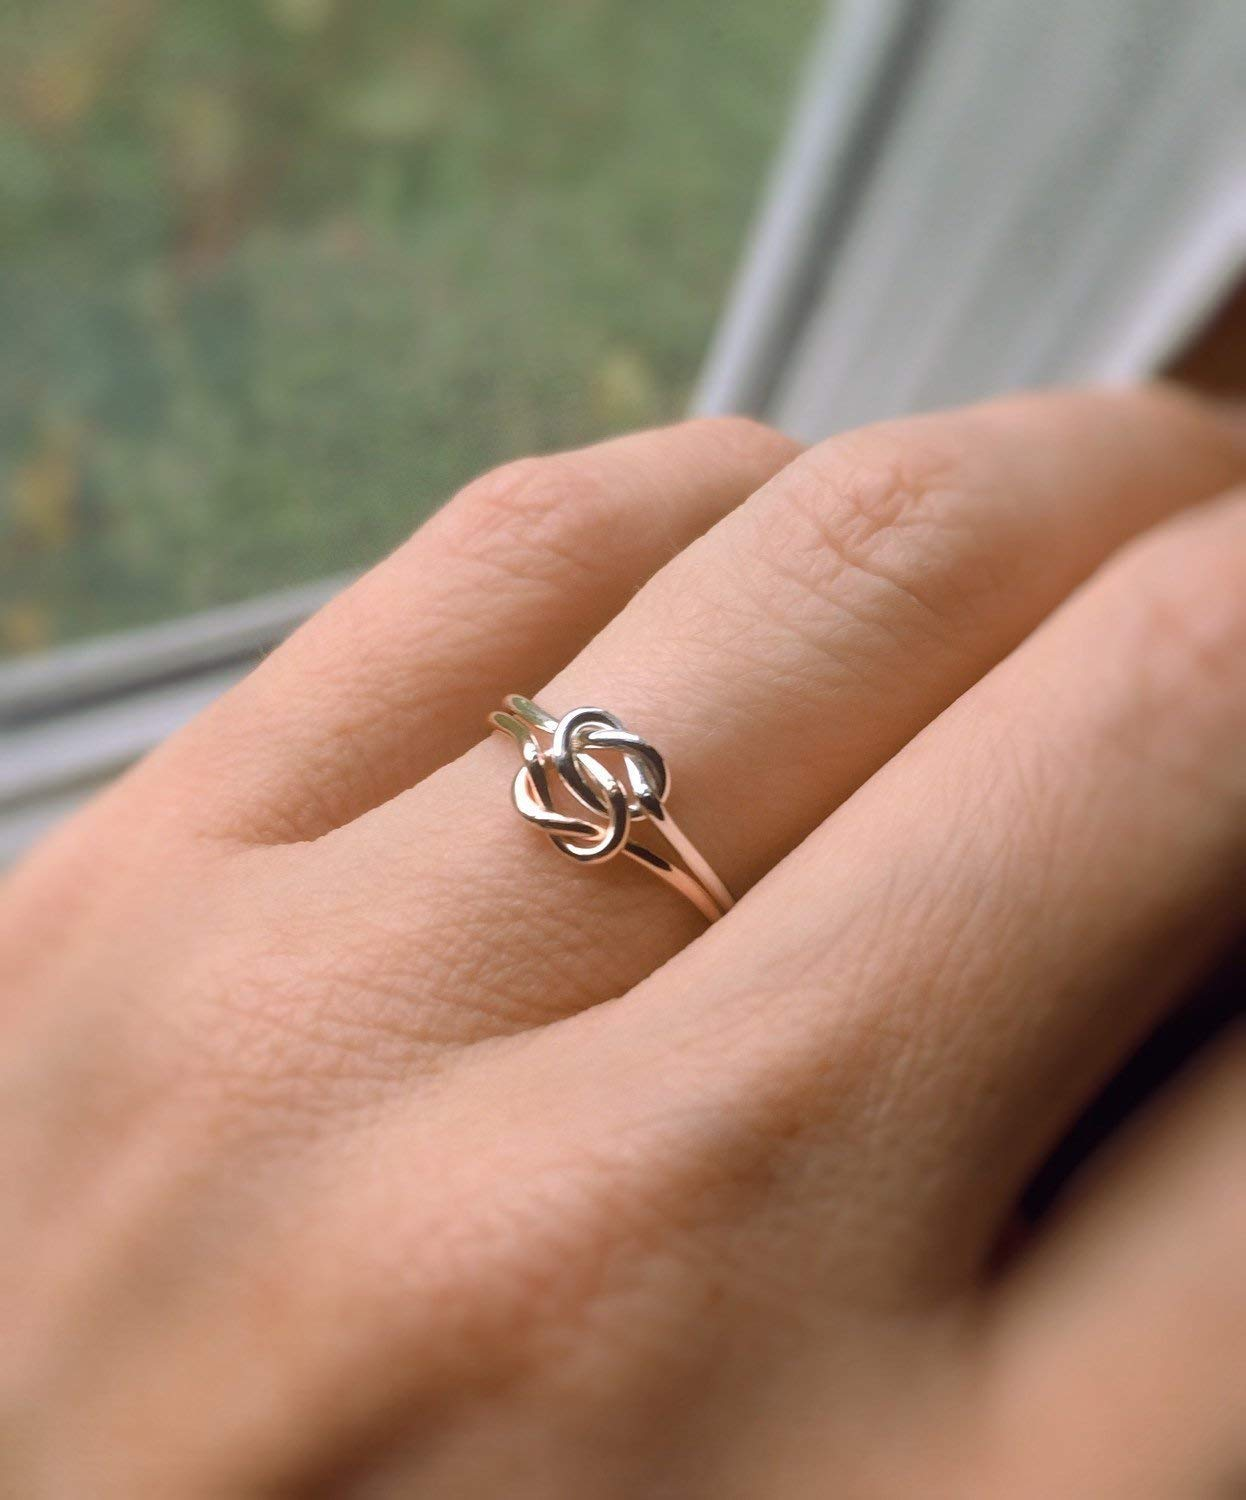 419f2120b Get Quotations · Double Knot Ring, Knot Rings, Minimalist Love Rings, Tie  the Knot Rings,